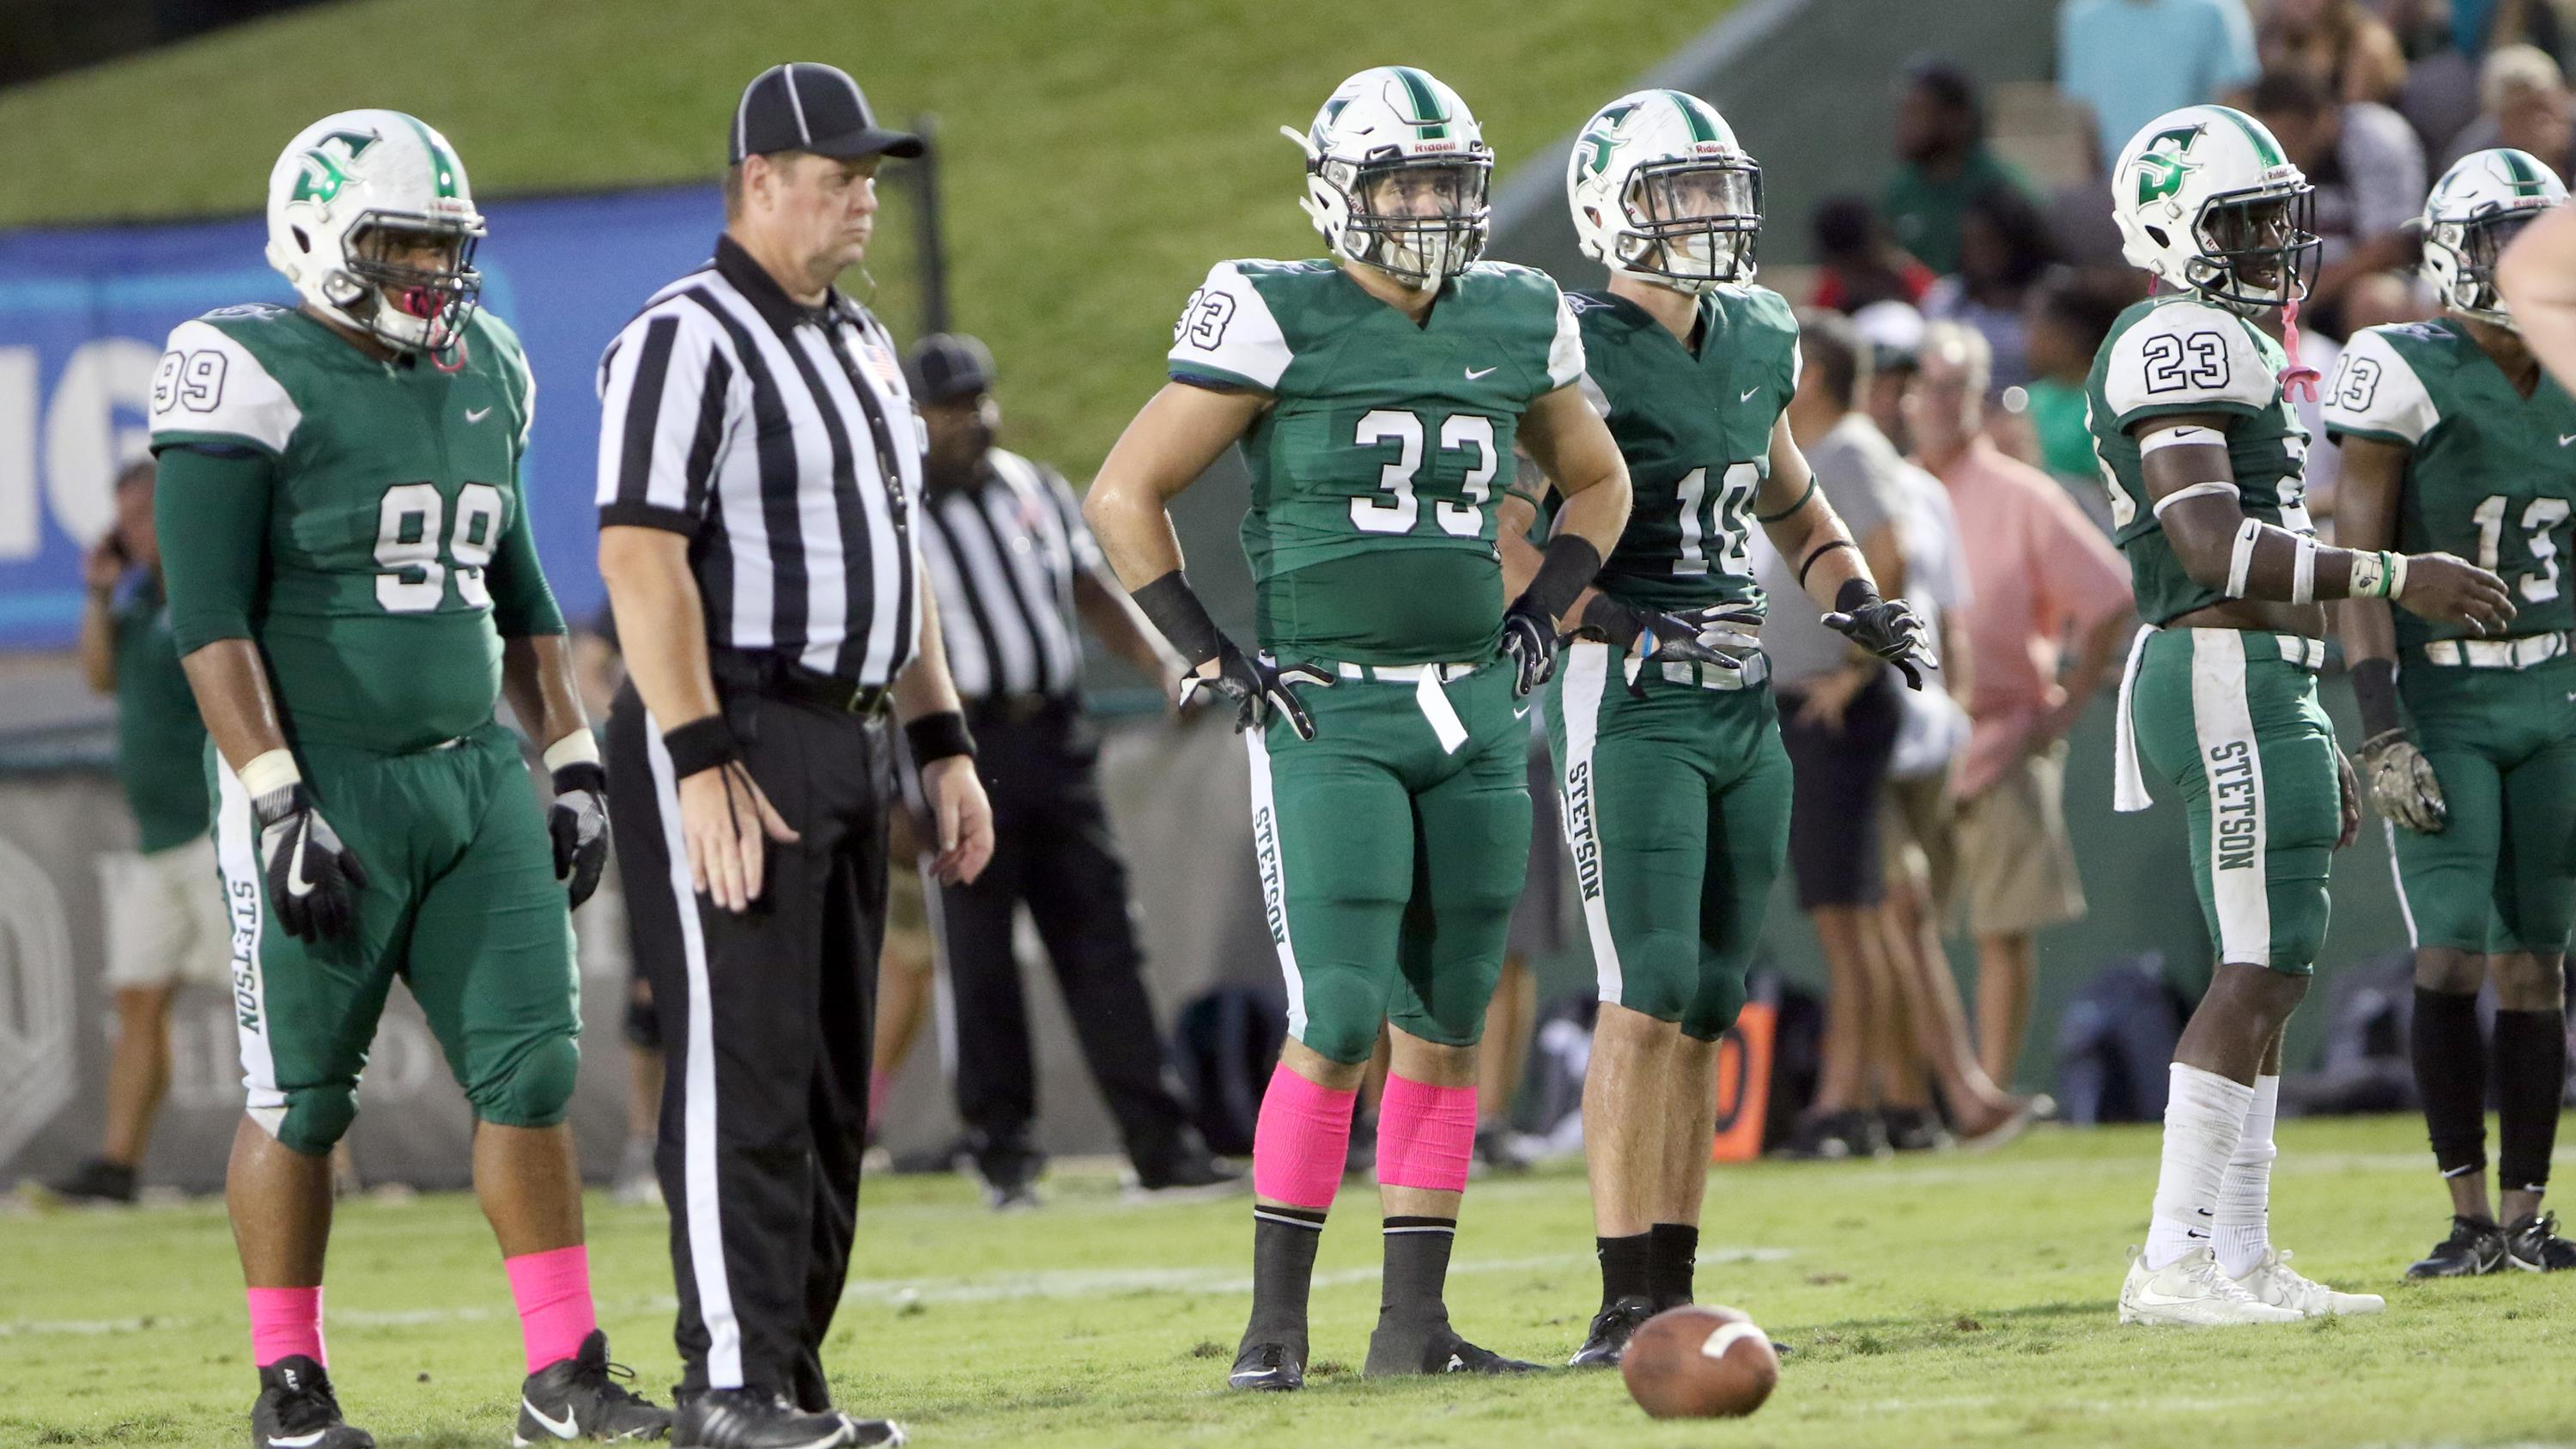 699bdc0f8fe Hatters and Wildcats to Clash in Search of Sixth Win - Stetson ...